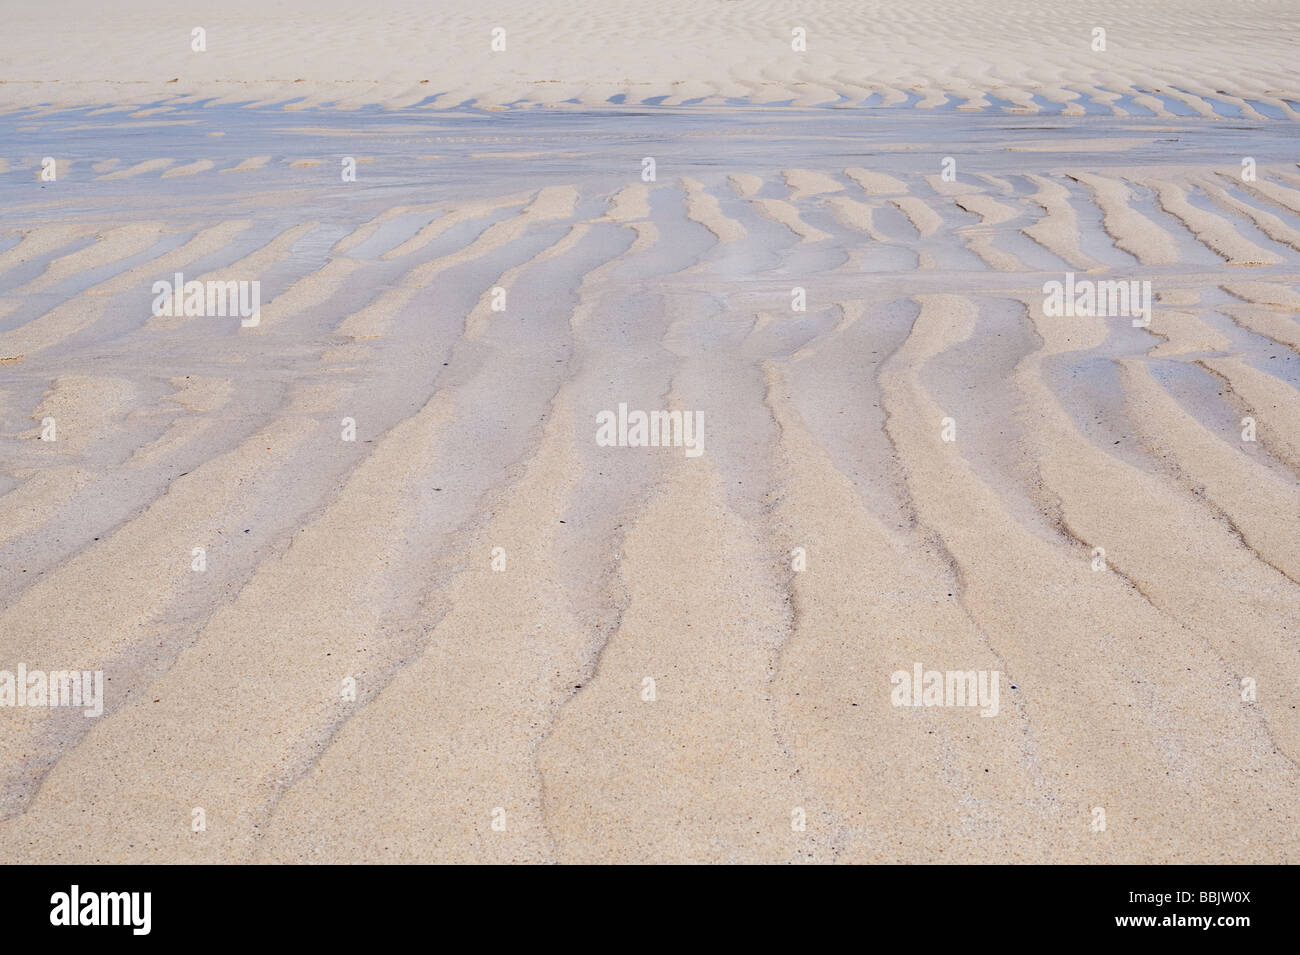 Sand waves patterns on Traigh Scarista beach, Isle of Harris, Outer Hebrides, Scotland - Stock Image